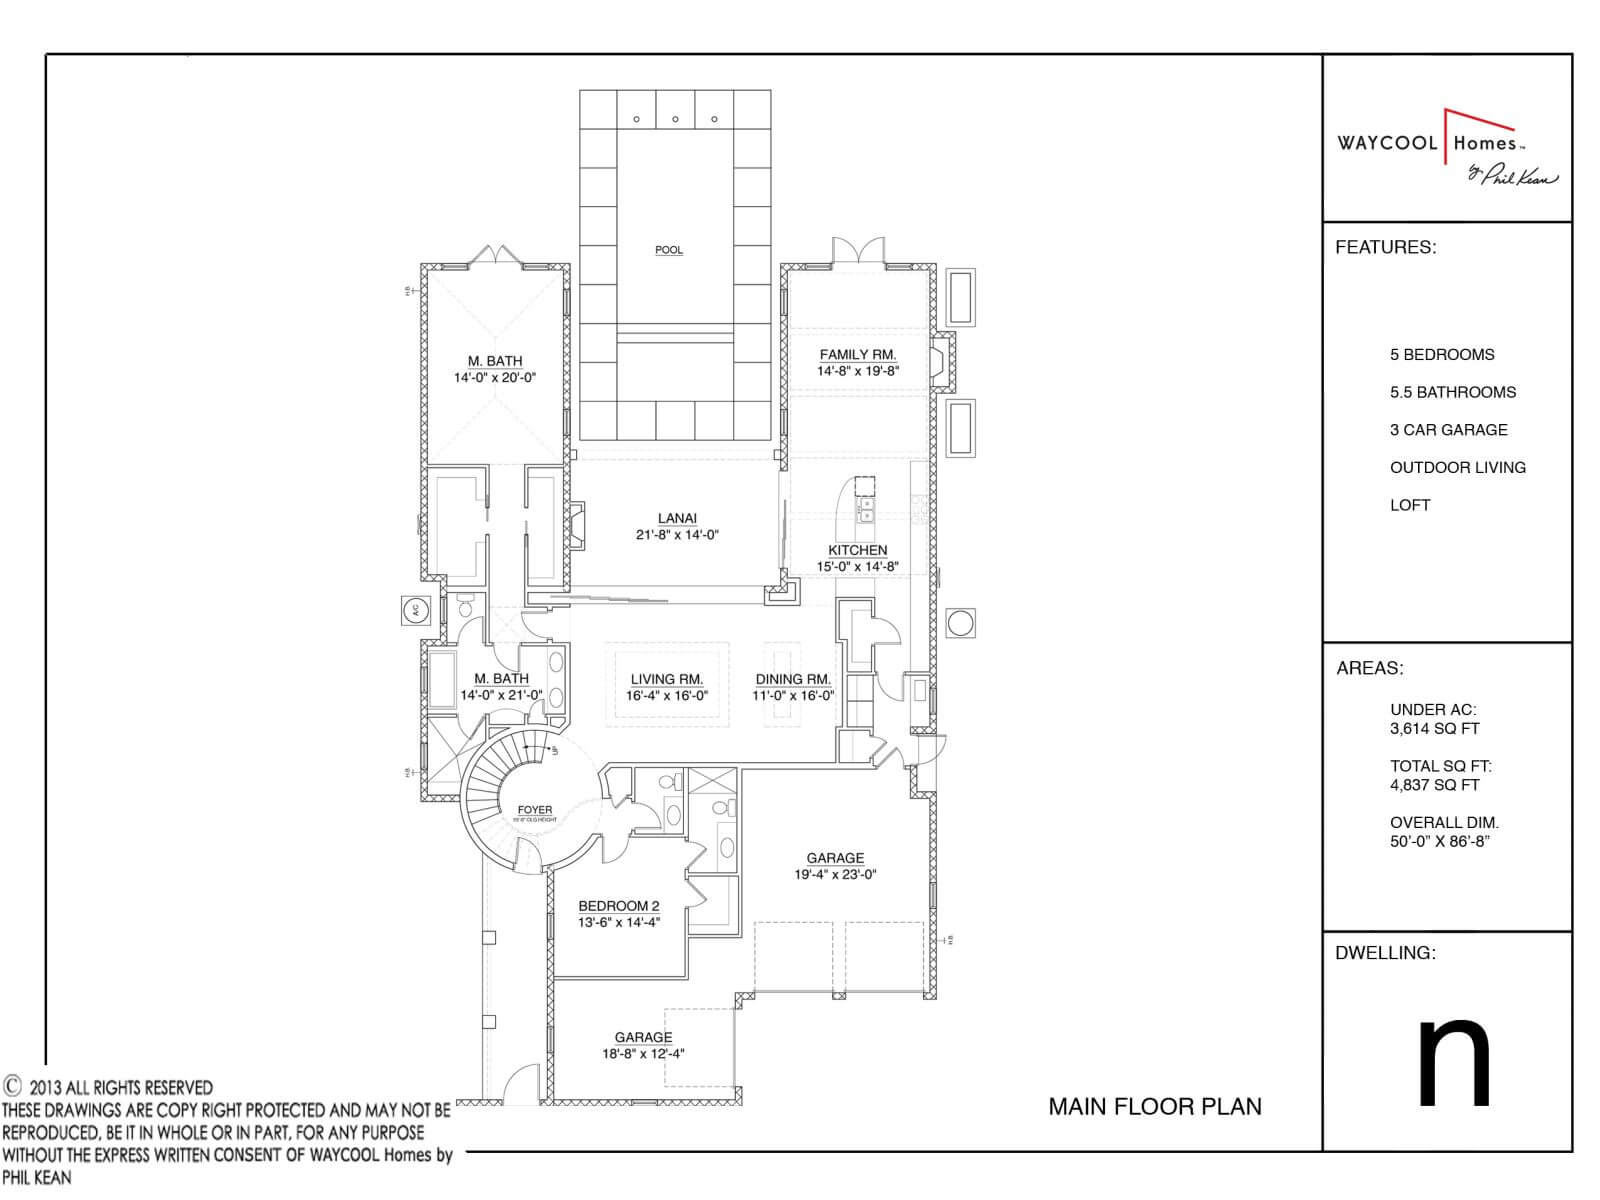 Floor Plans,WAYCOOL HOMES BY PHIL KEAN,1176